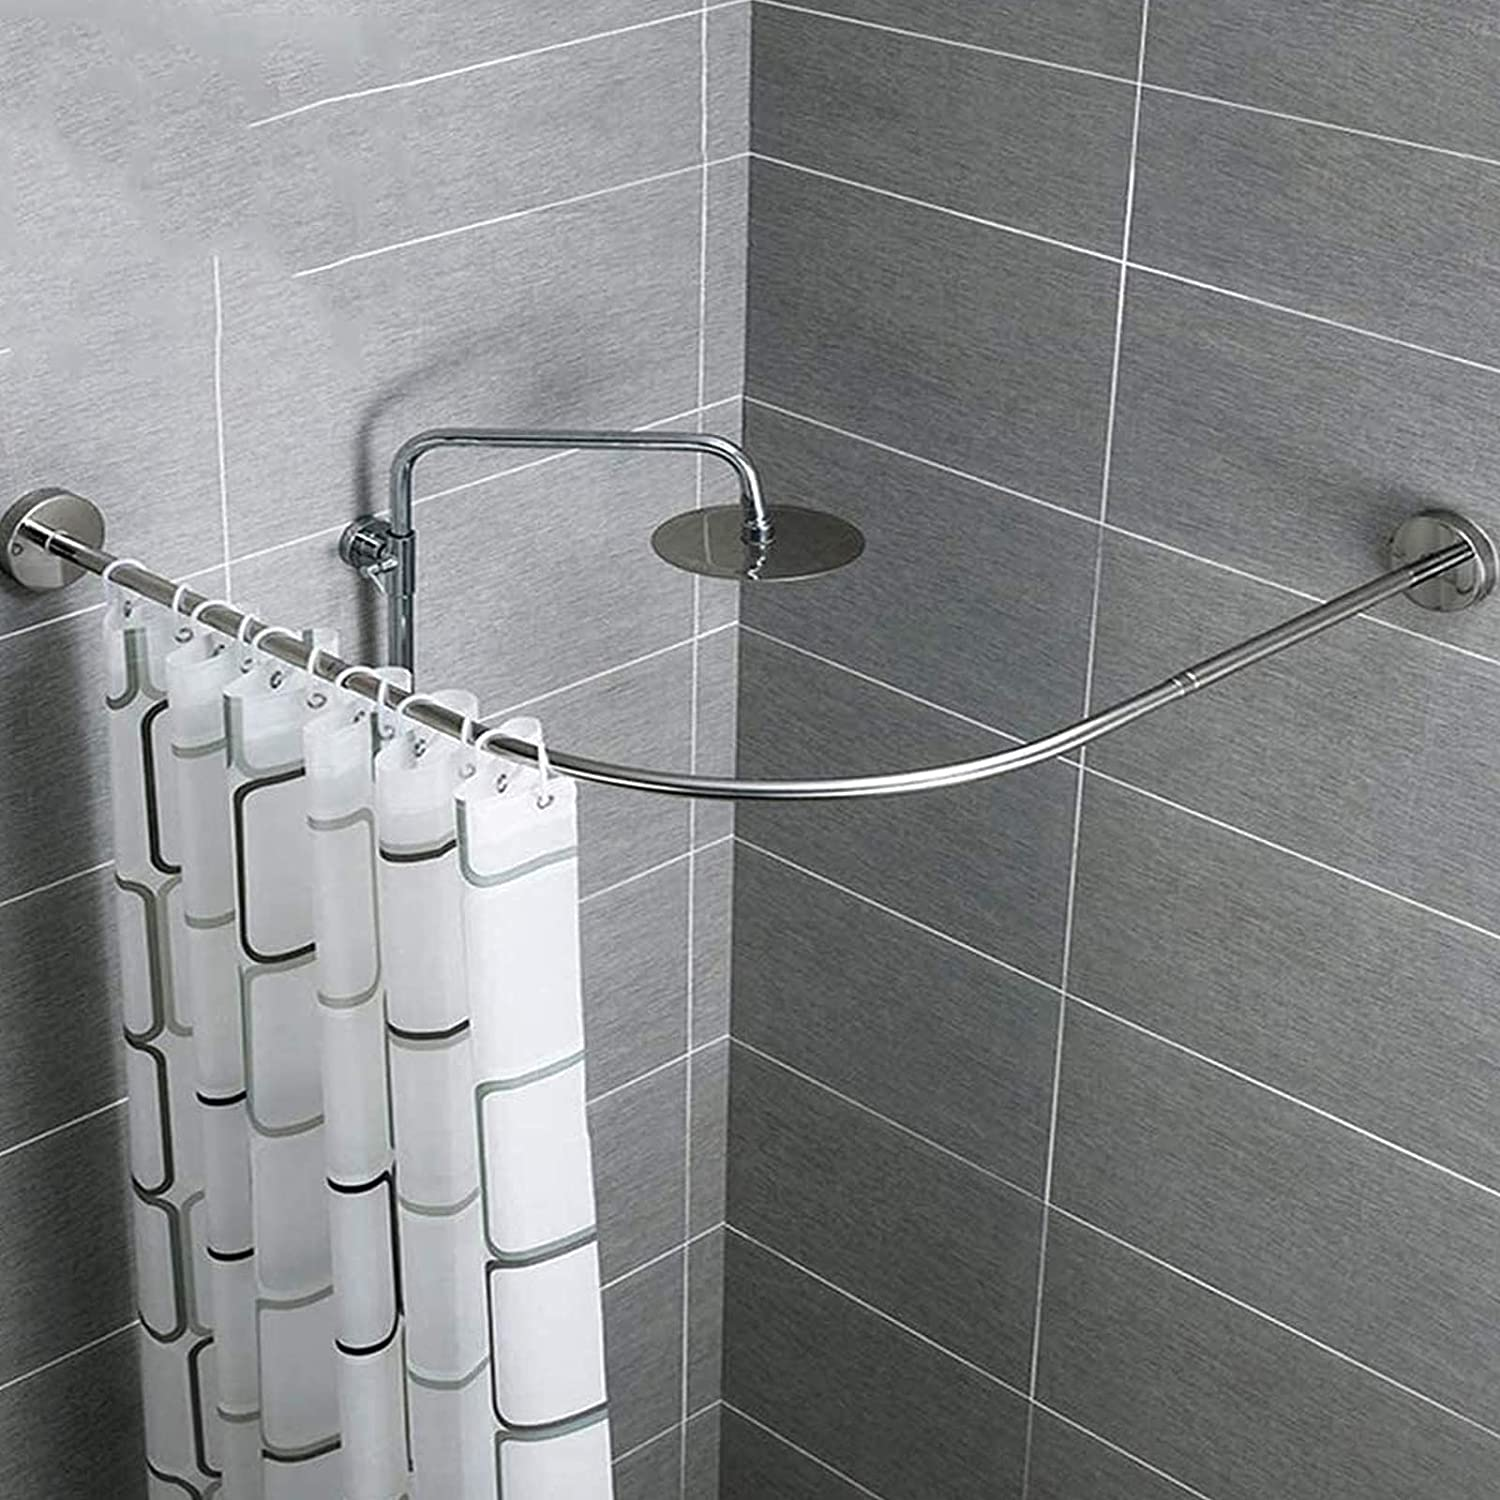 Shower Curtain Rod Curved Mesa Mall Tension No B online shop Drill